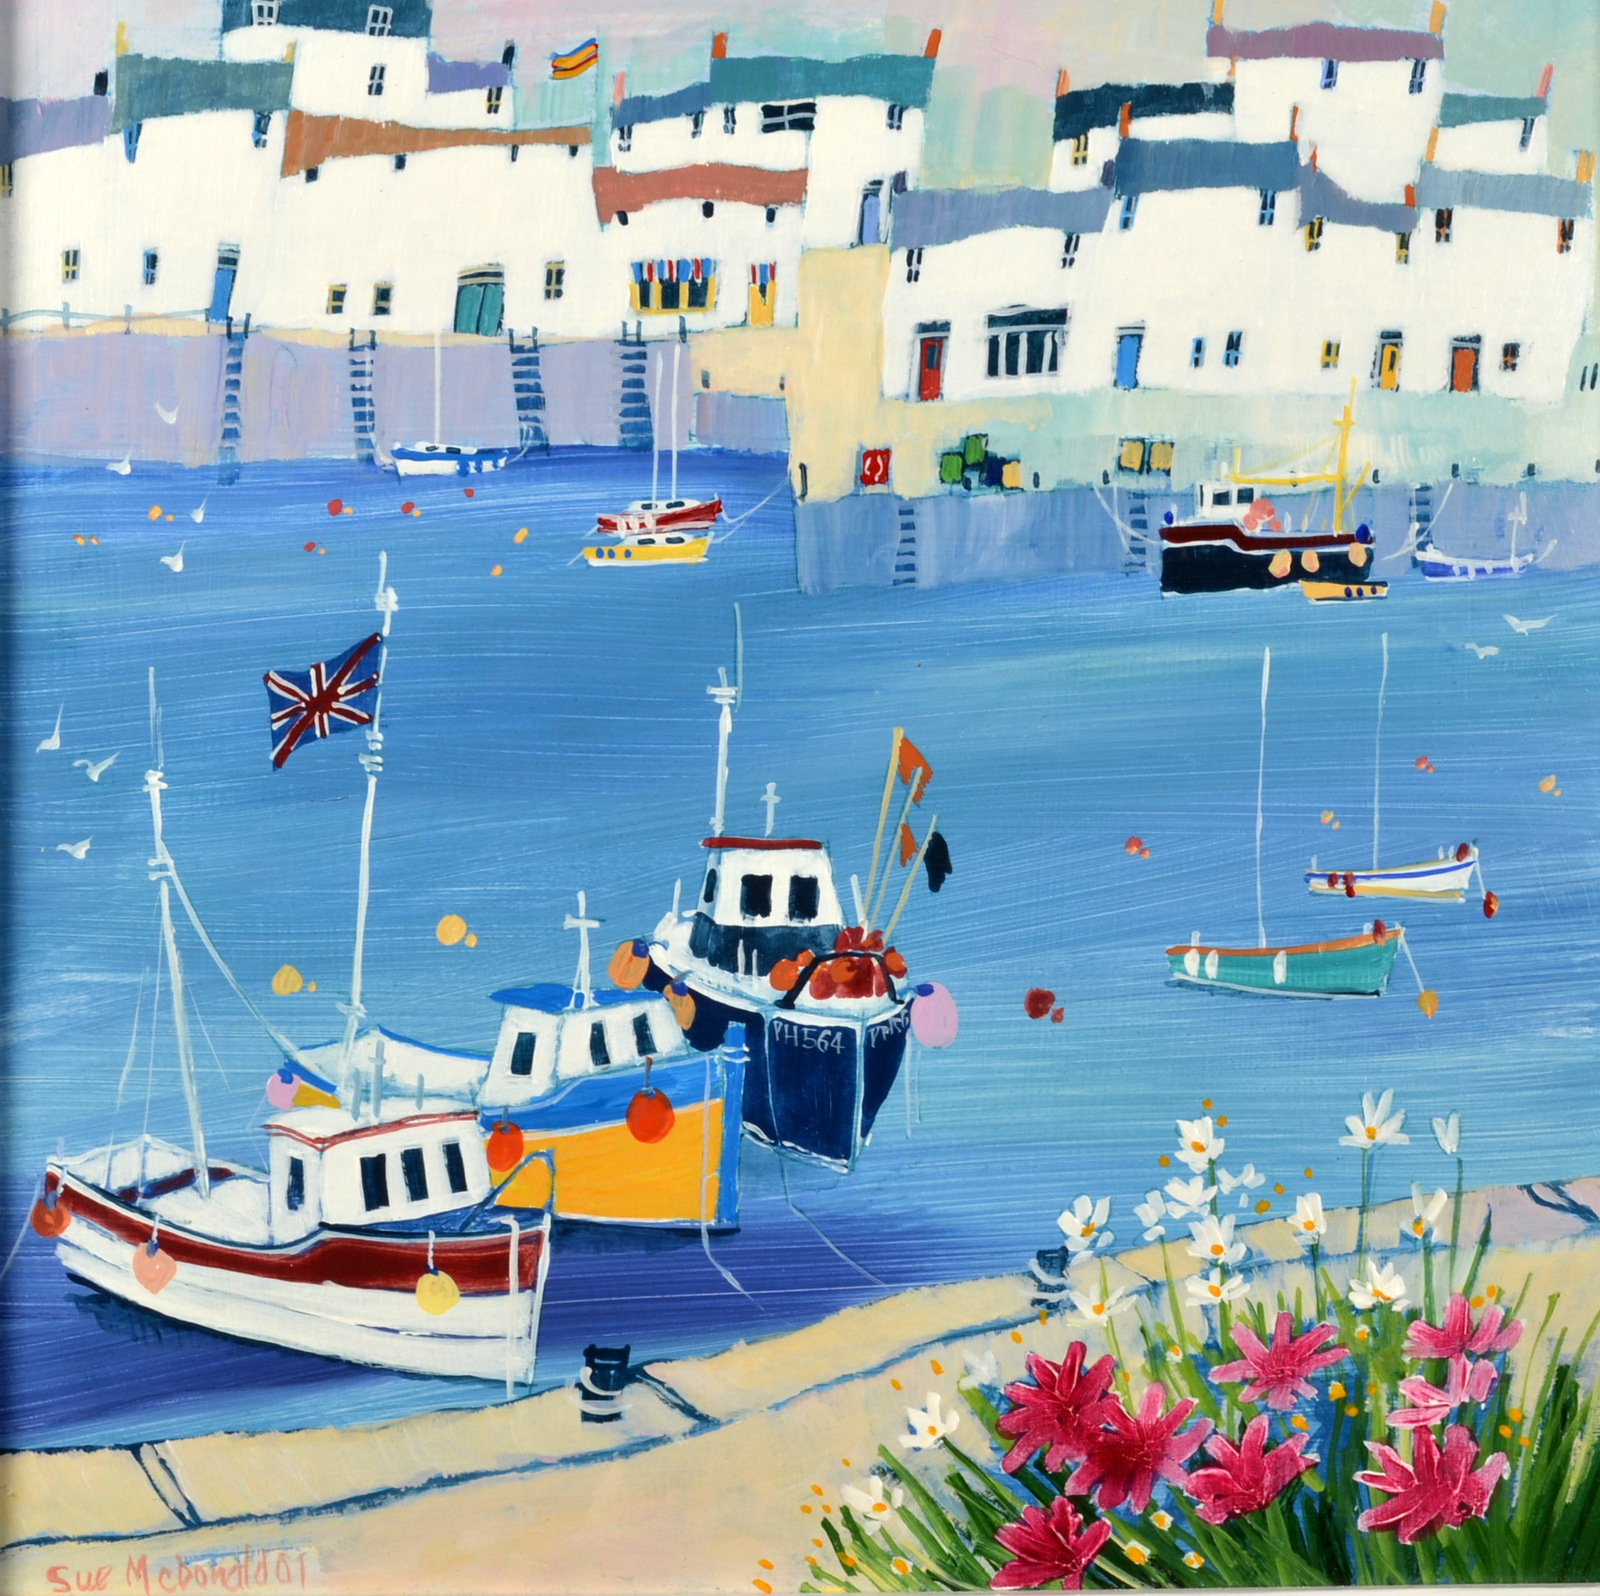 Lot 25 - SUE McDONALD Flowers on the Quay Acrylic on board Signed and dated '01 Titled on the back 30 x 30cm